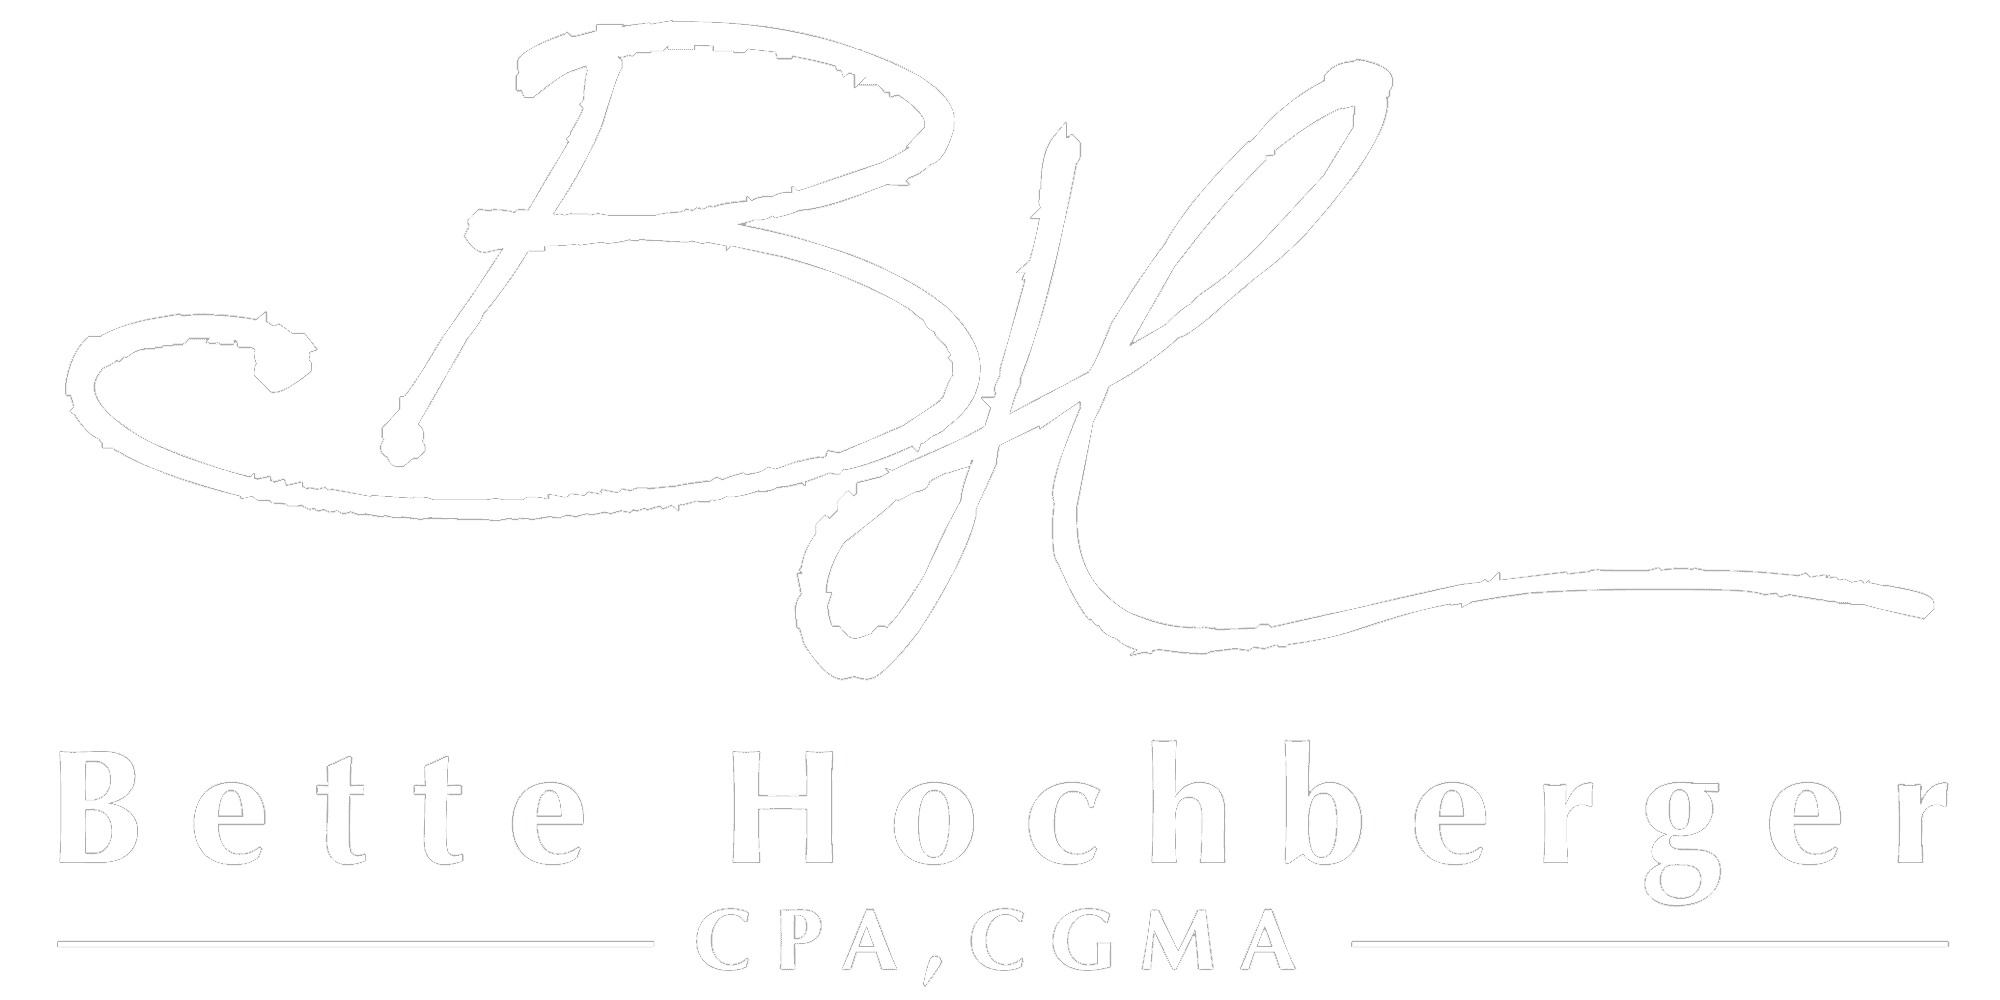 Bette Hochberger CPA CGMA